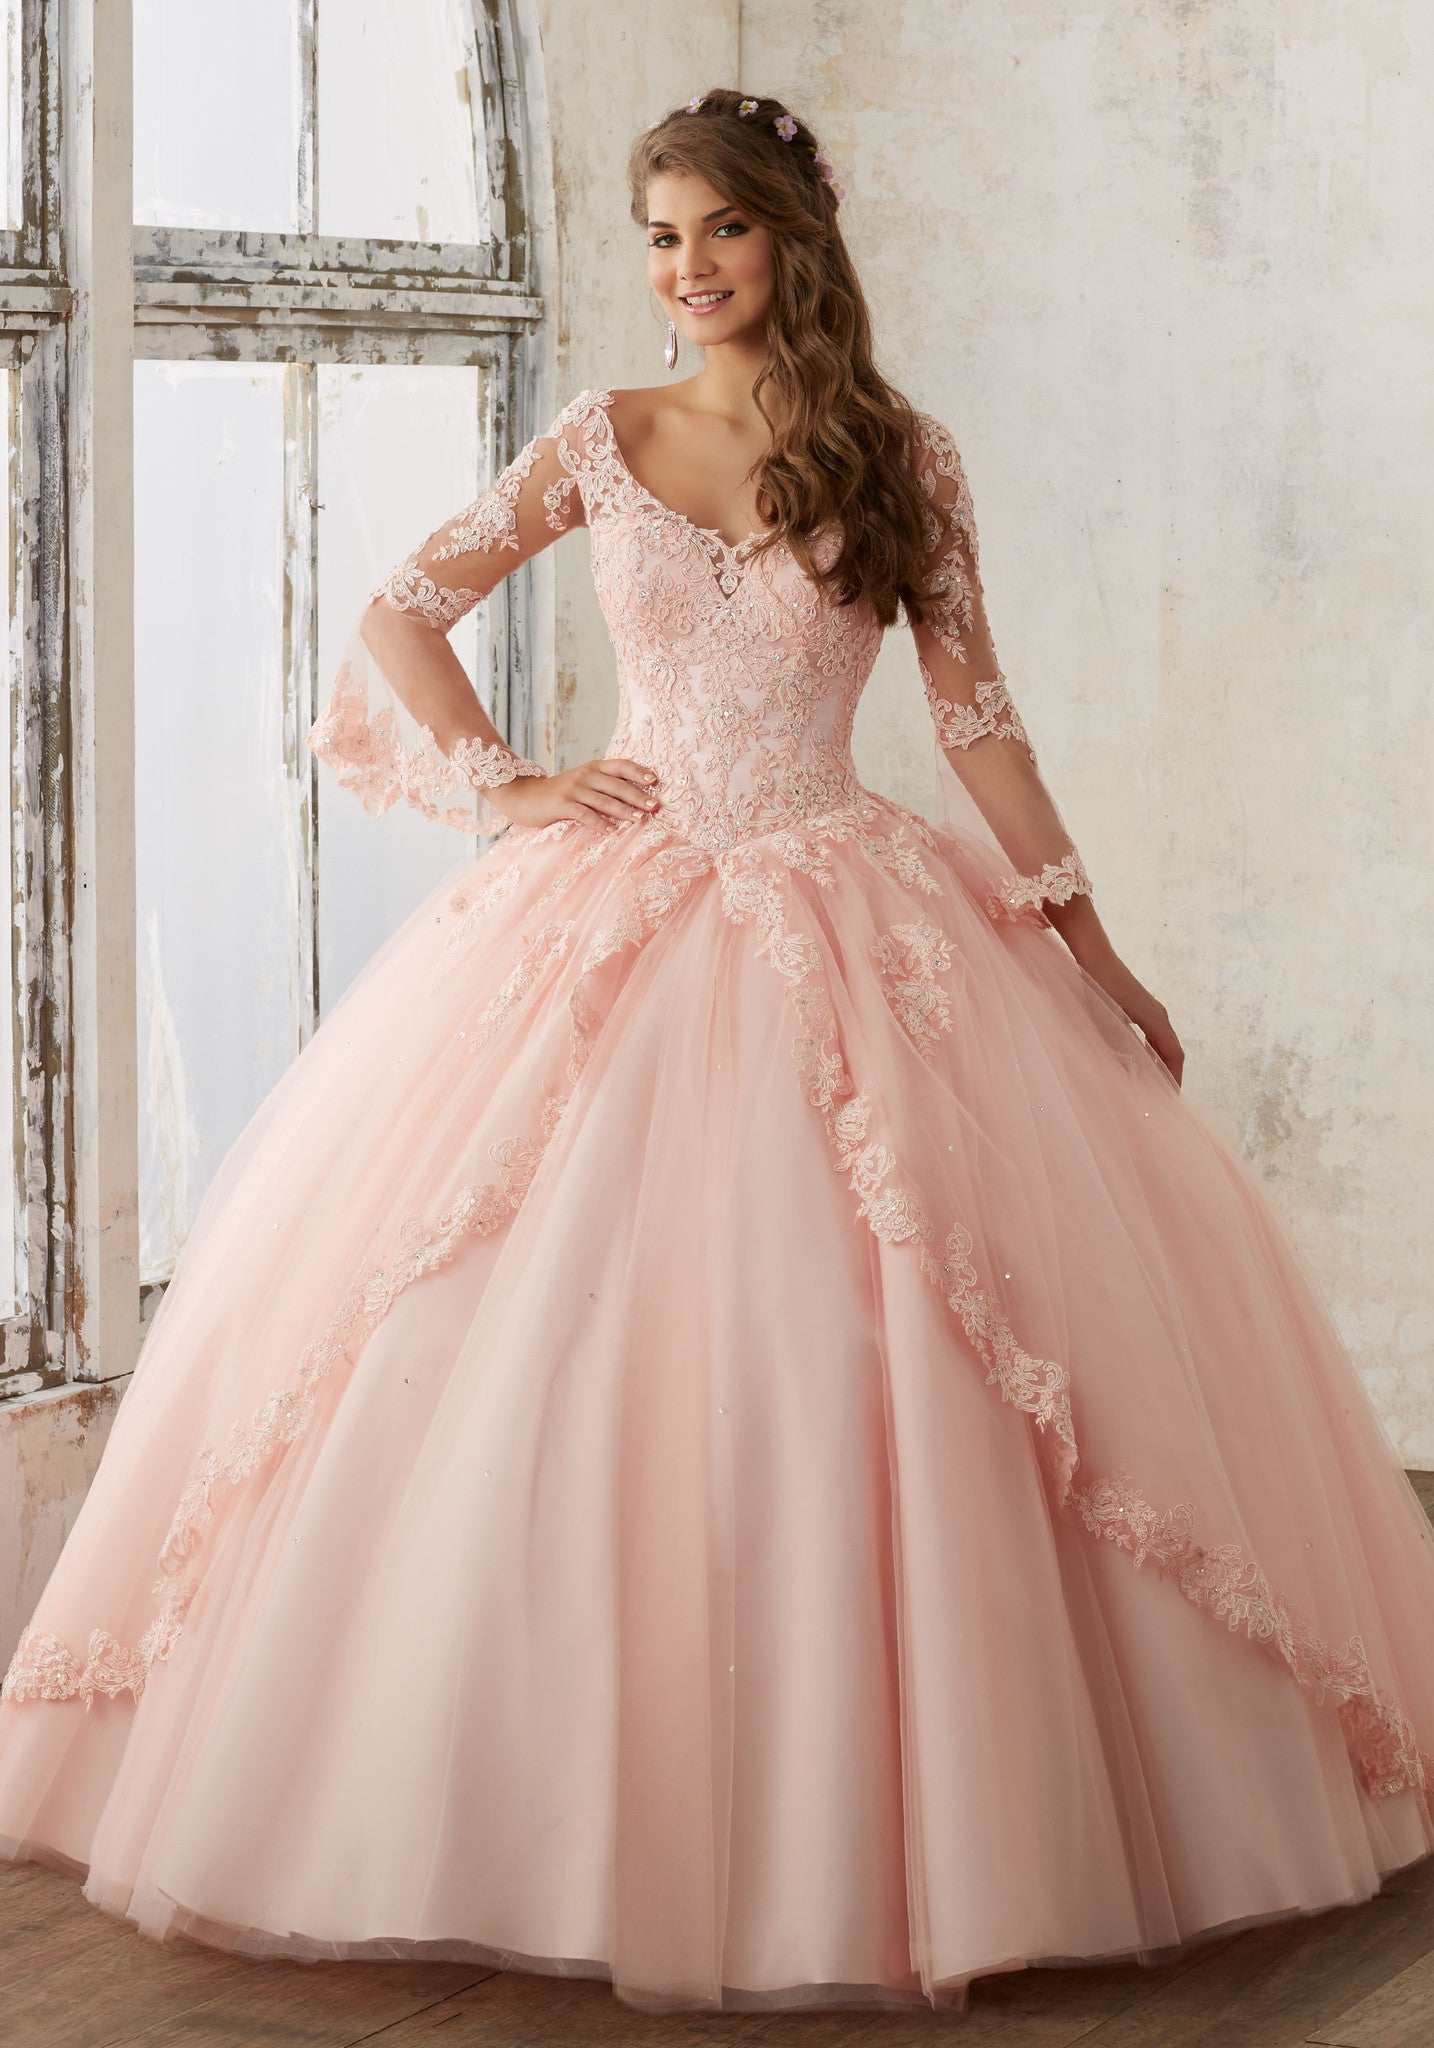 57b9638856 Beaded Lace on a Princess Tulle Quinceañera Ball Gown ...